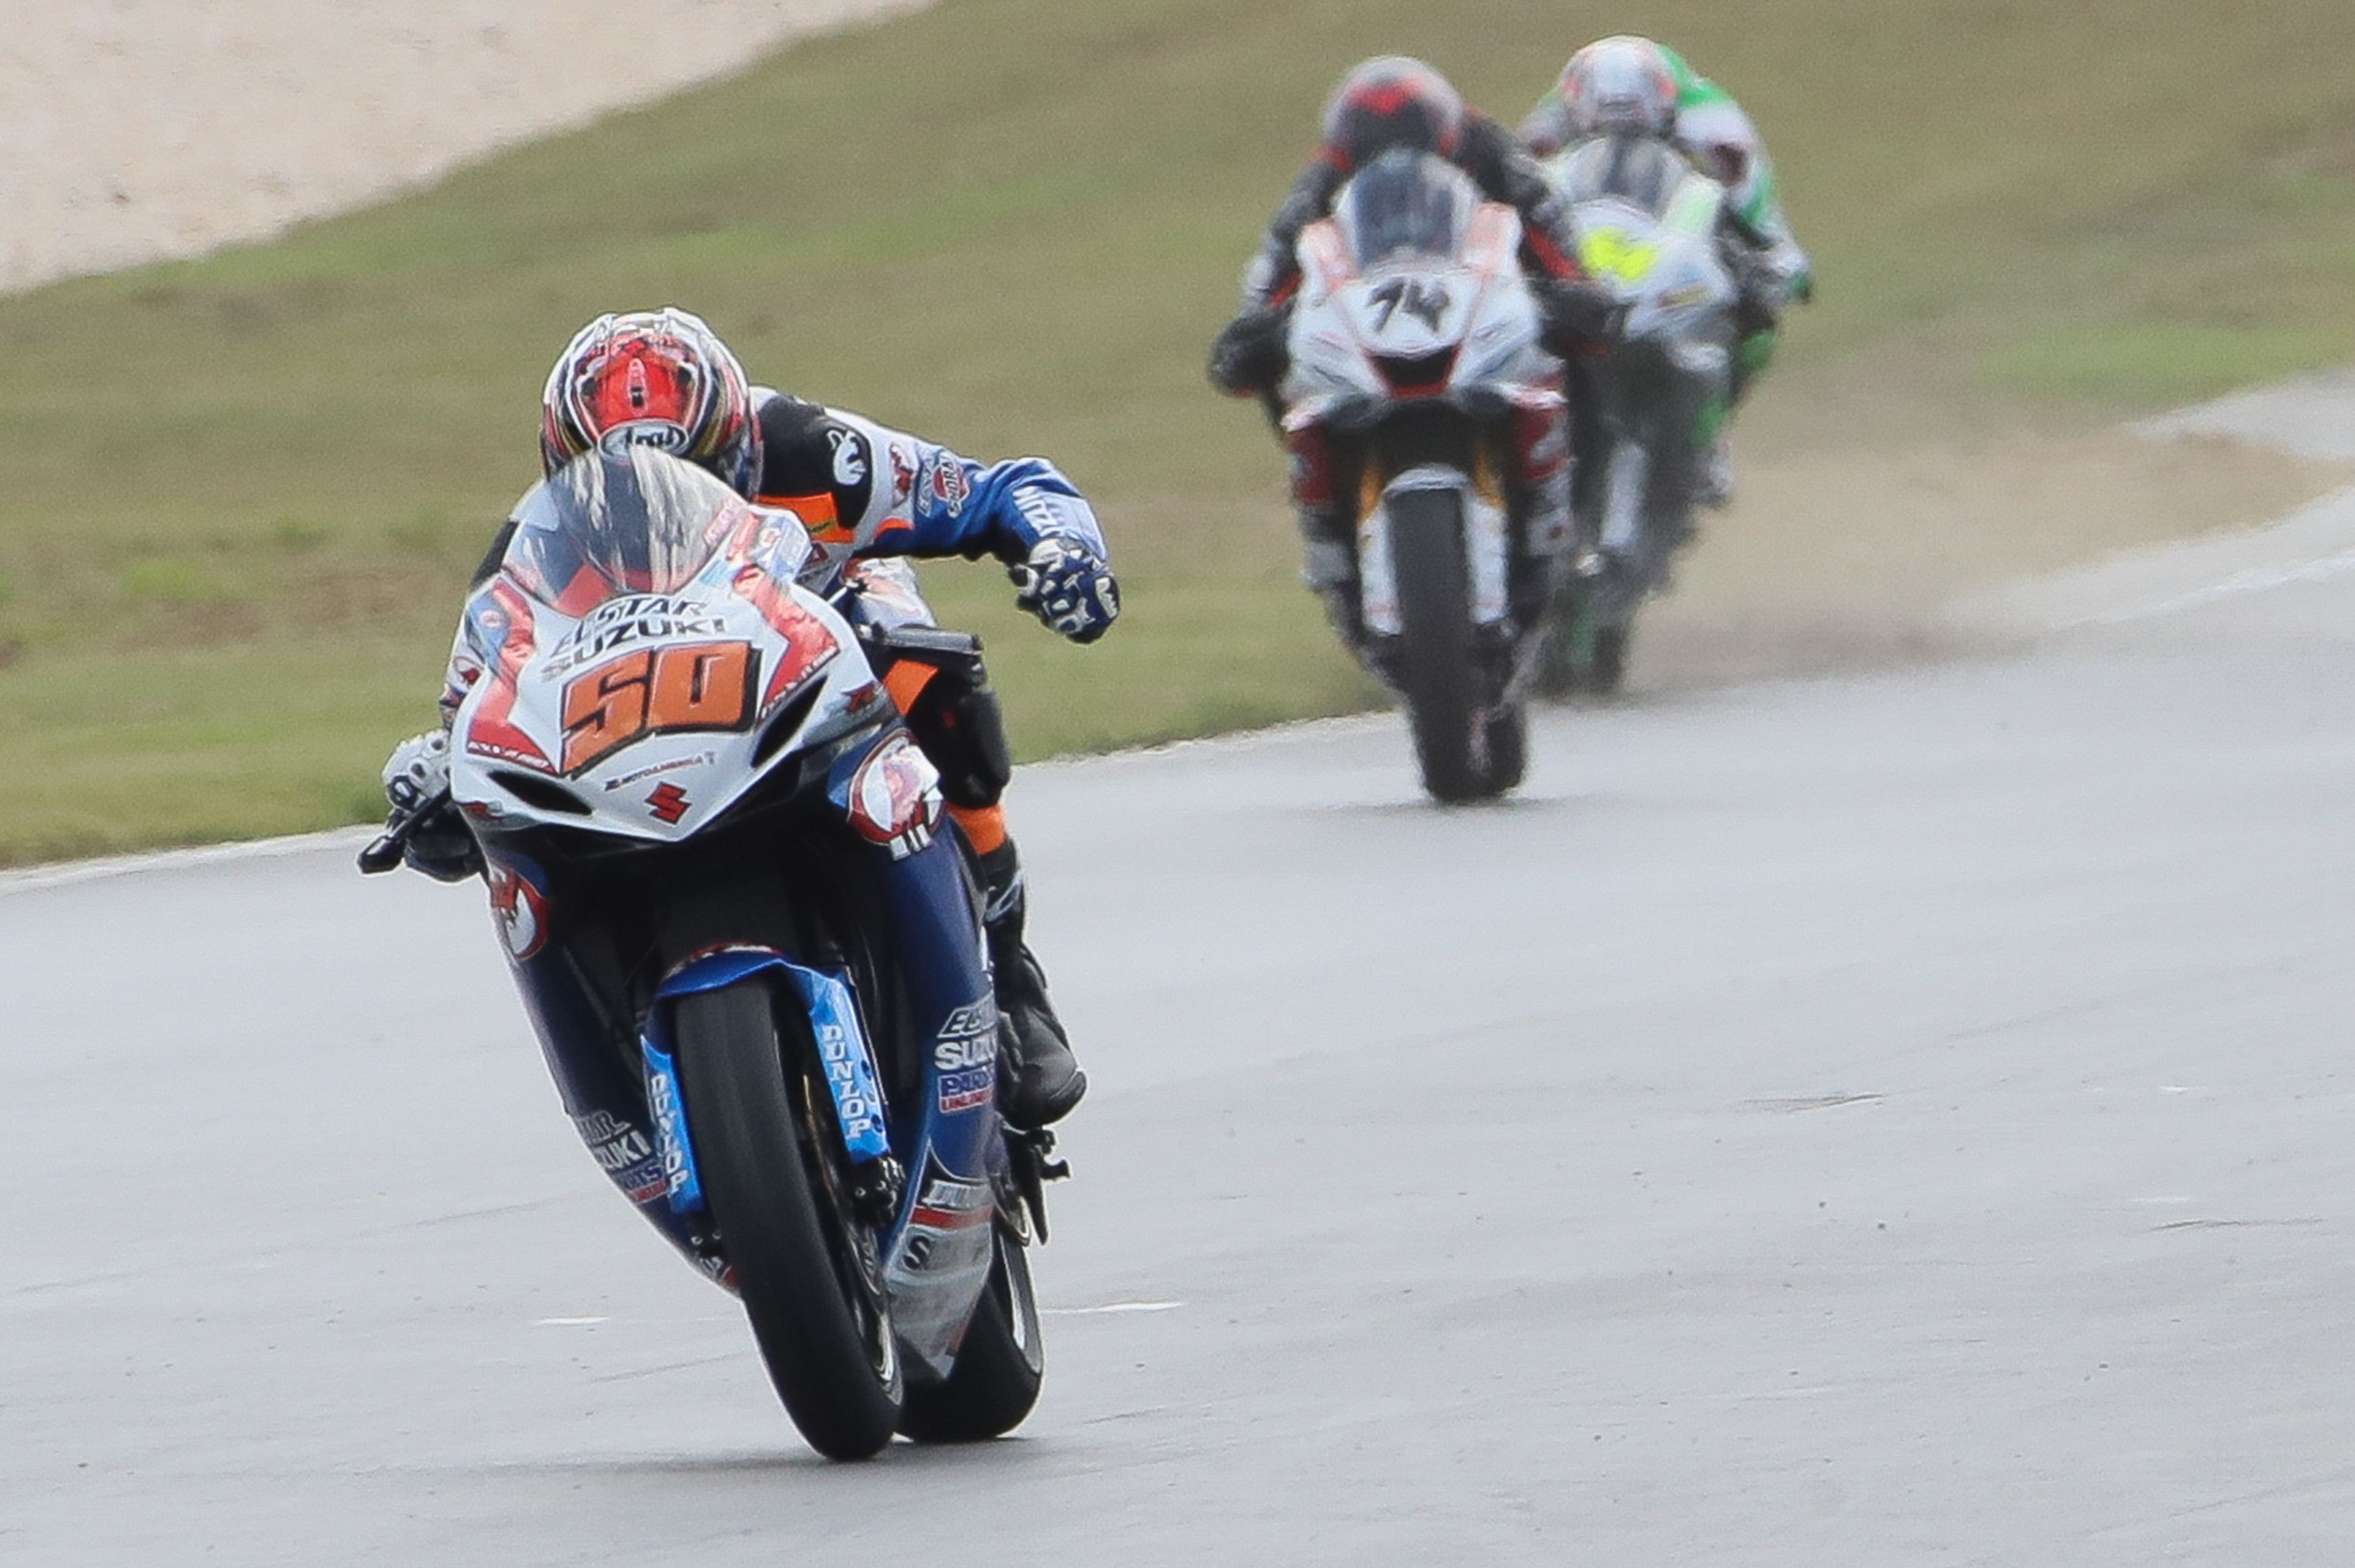 200204 Fong crossing the finish line at Barber Motorsports Park to win the 2019 MotoAmerica Supersport Championship